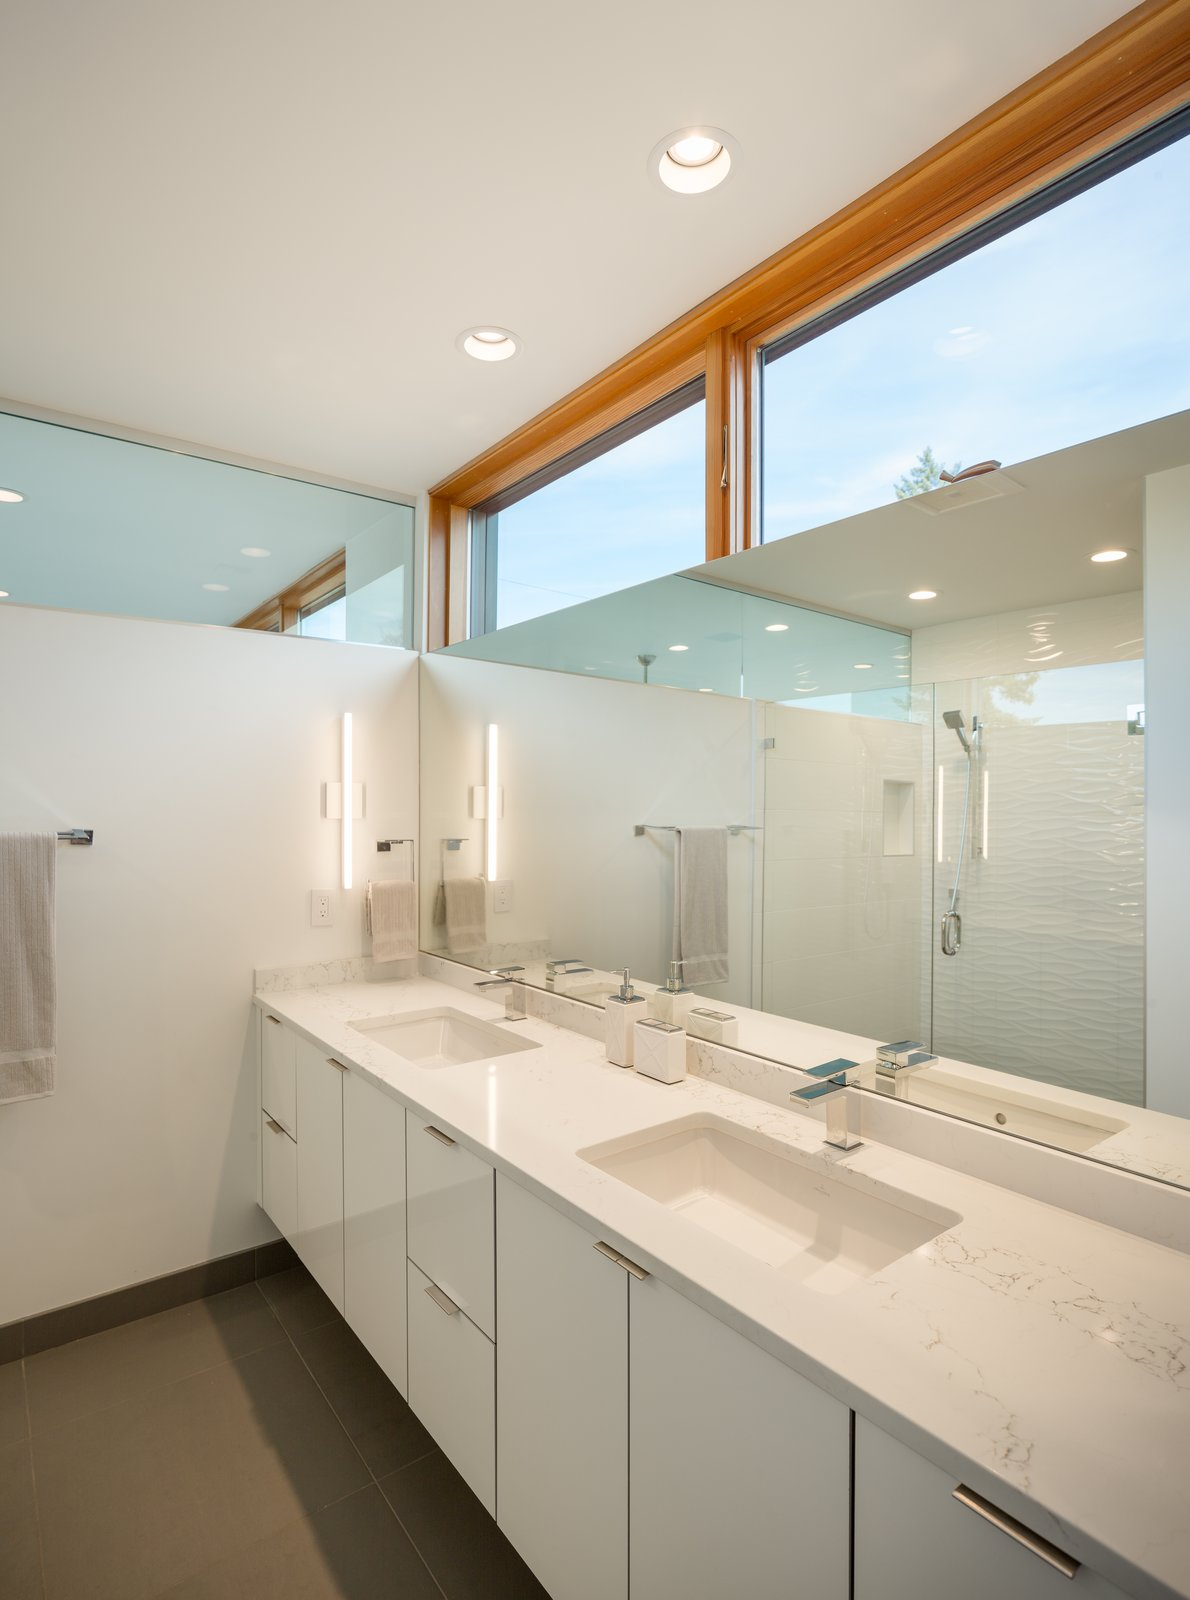 Bath Room, Porcelain Tile Floor, Porcelain Tile Wall, Wall Lighting, Undermount Sink, Recessed Lighting, Engineered Quartz Counter, and Open Shower Master bath with ribbon of windows and clerestory glass  Lightbox 23 by Steelhead Architecture